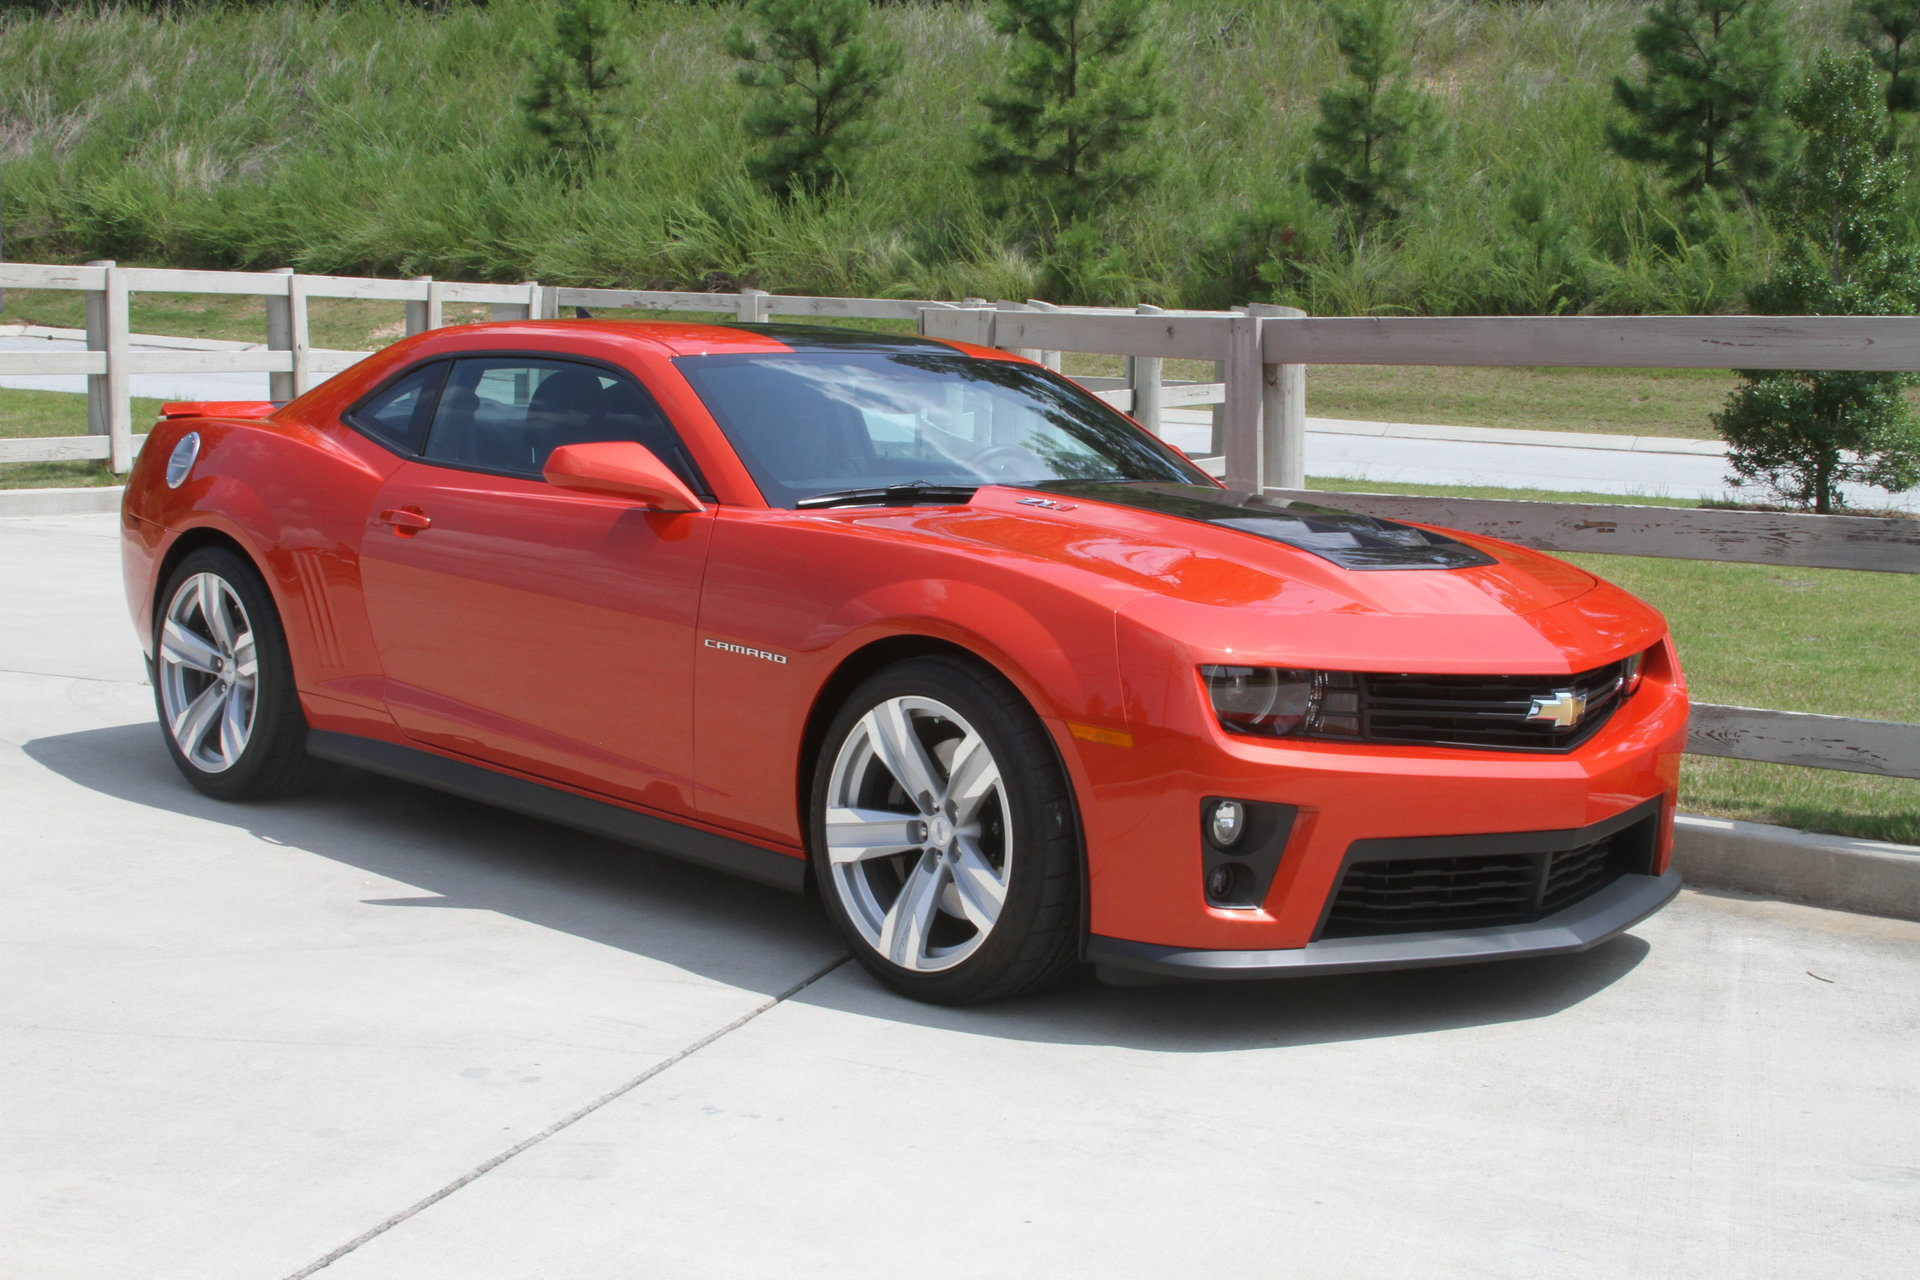 2012 Chevrolet Camaro Zl1 For Sale 72975 Mcg